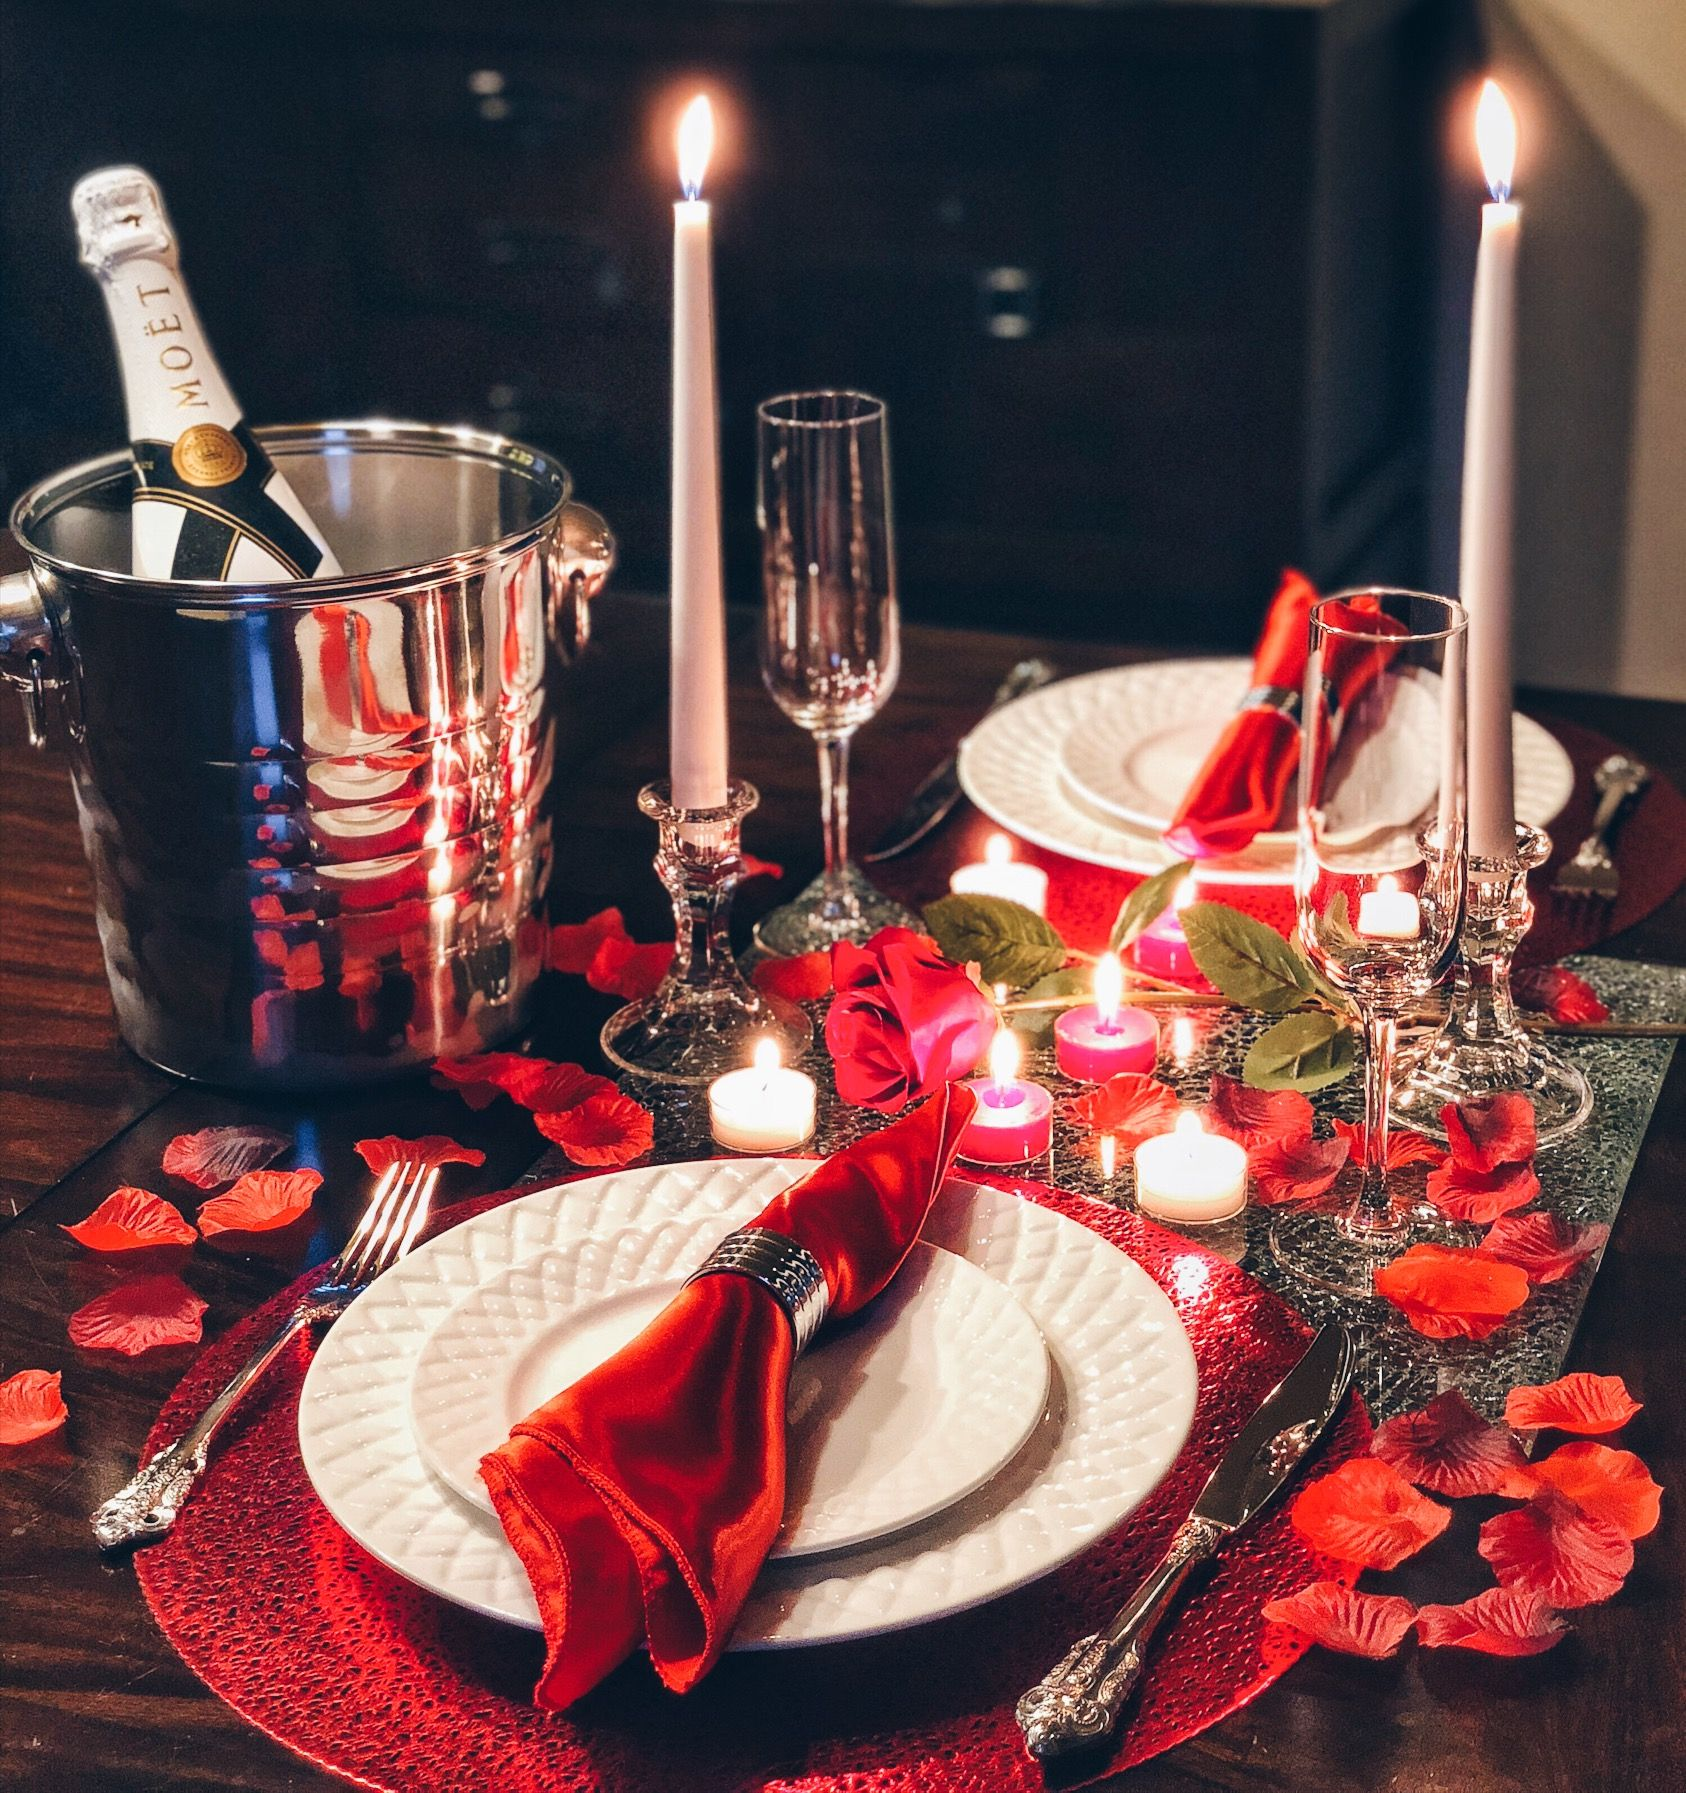 Dinner For Two Romance In A Box Romantic Valentines Dinner Romantic Dinner Setting Romantic Dinner Decoration